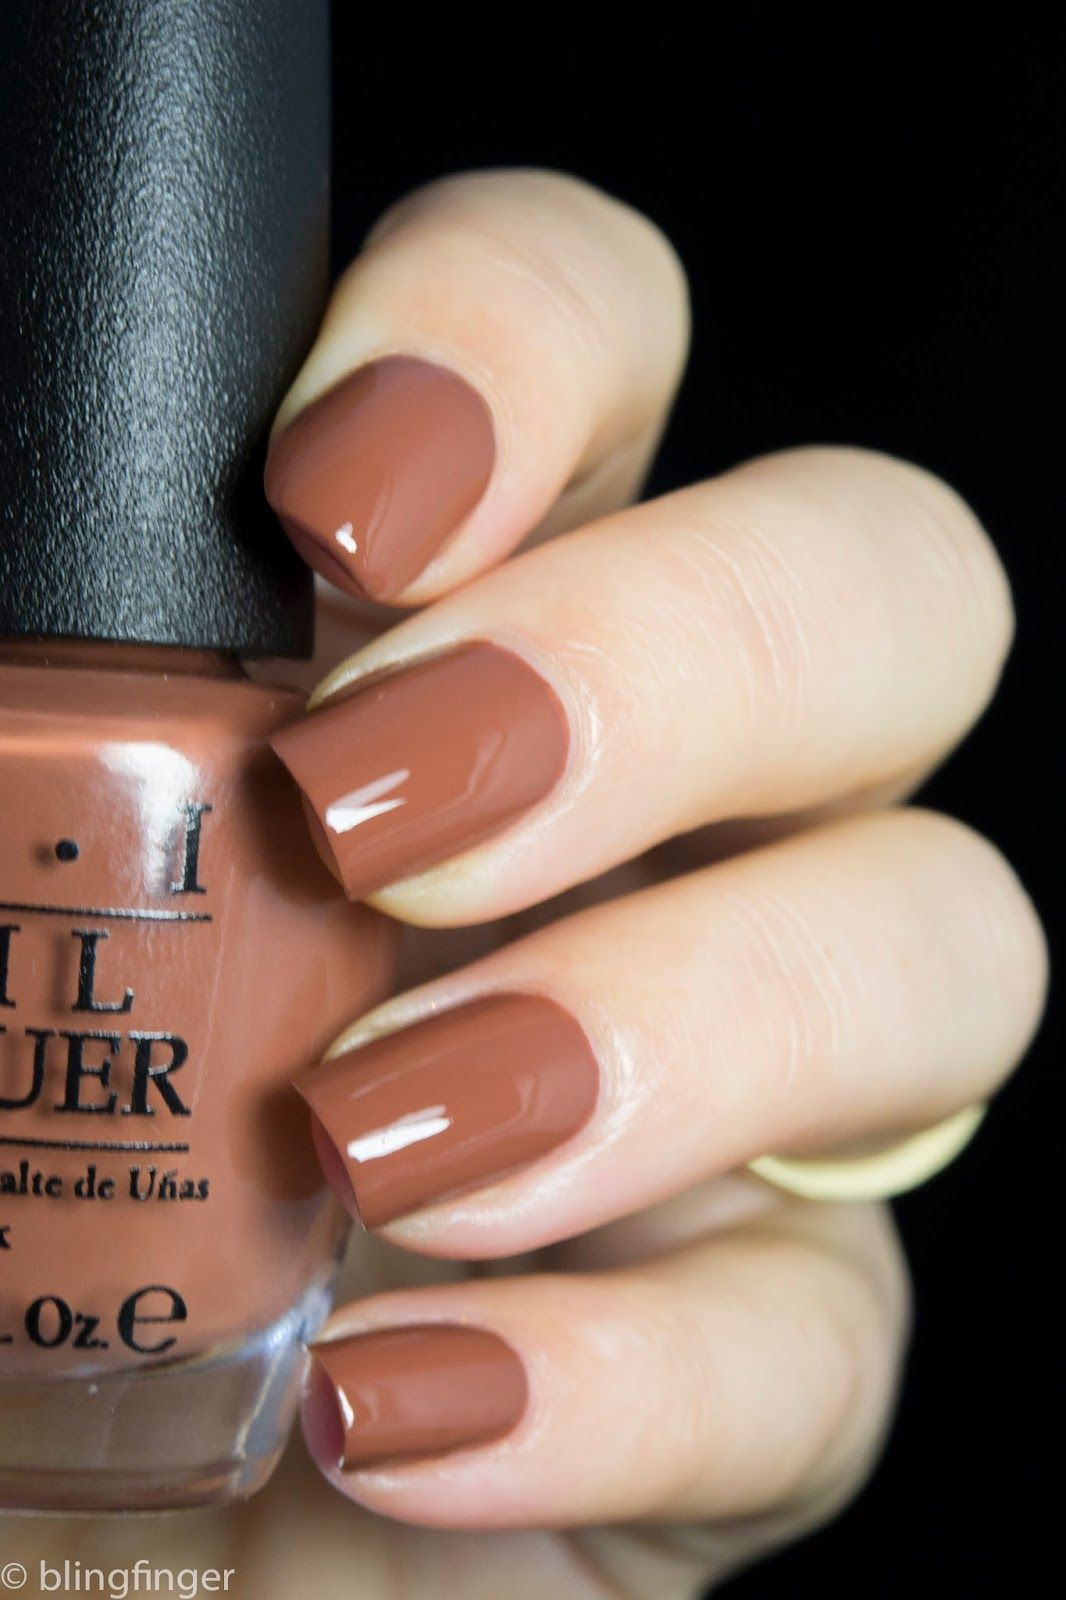 Ongles vernis (marron) | Maquillage | Pinterest | Fries, OPI and ...